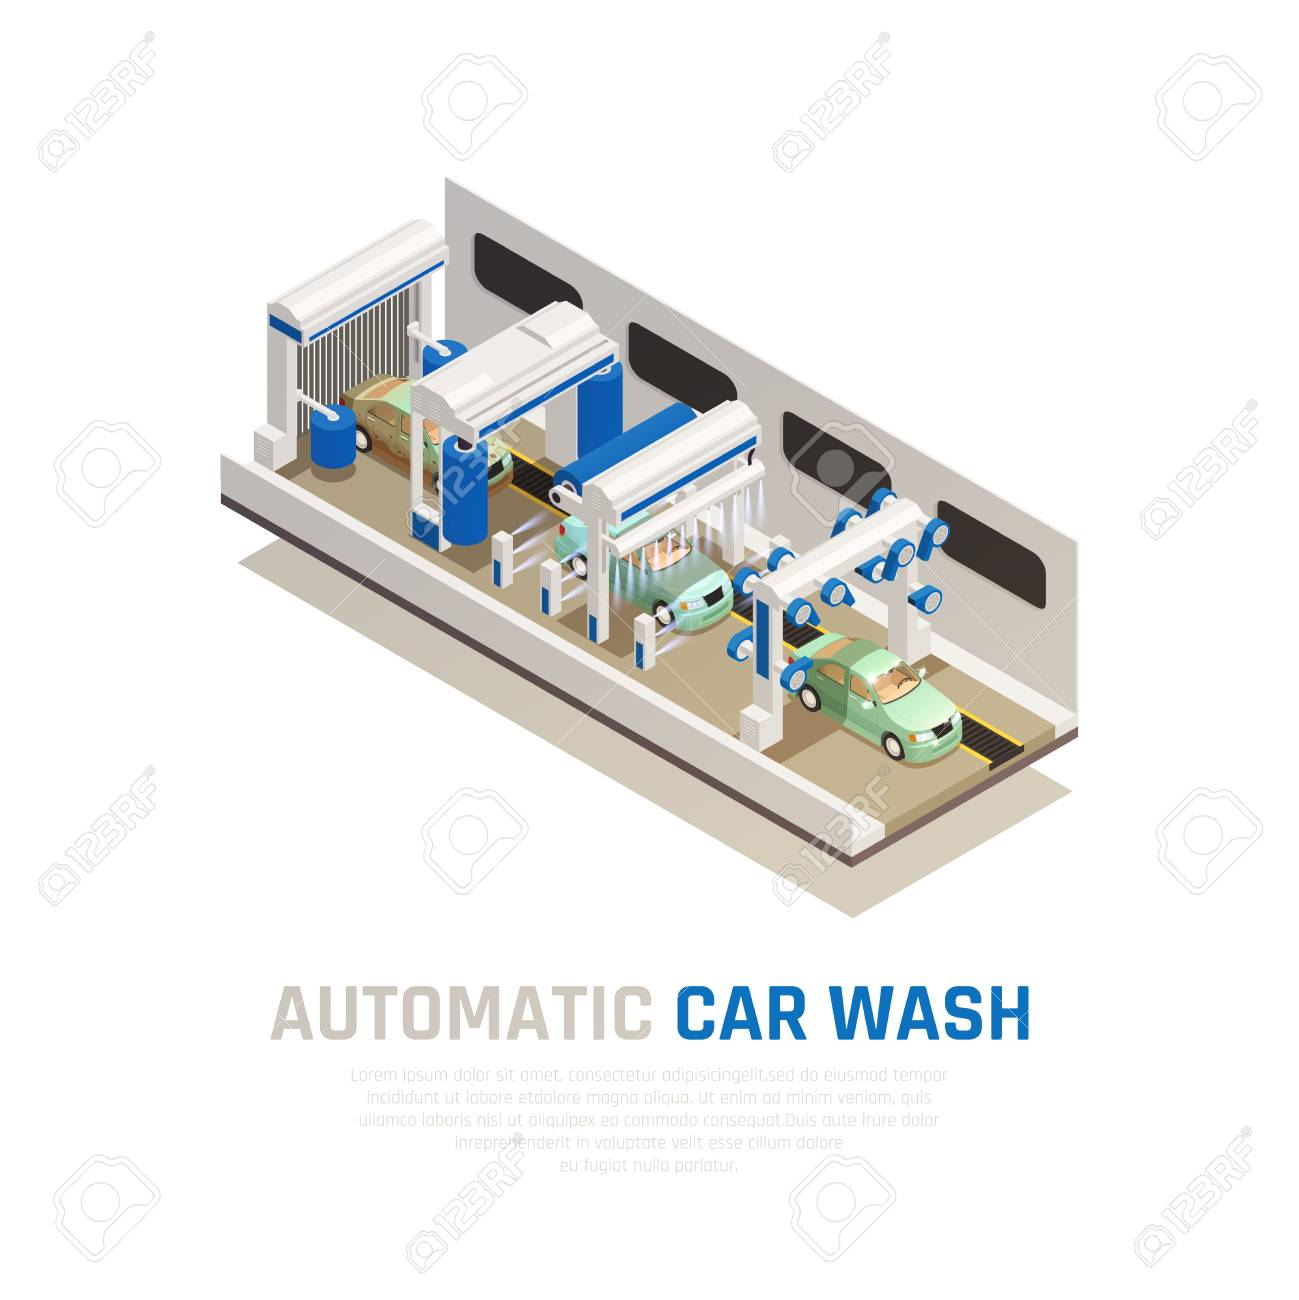 hight resolution of carwash service isometric consept with automatic car wash symbols vector illustration stock vector 122899540